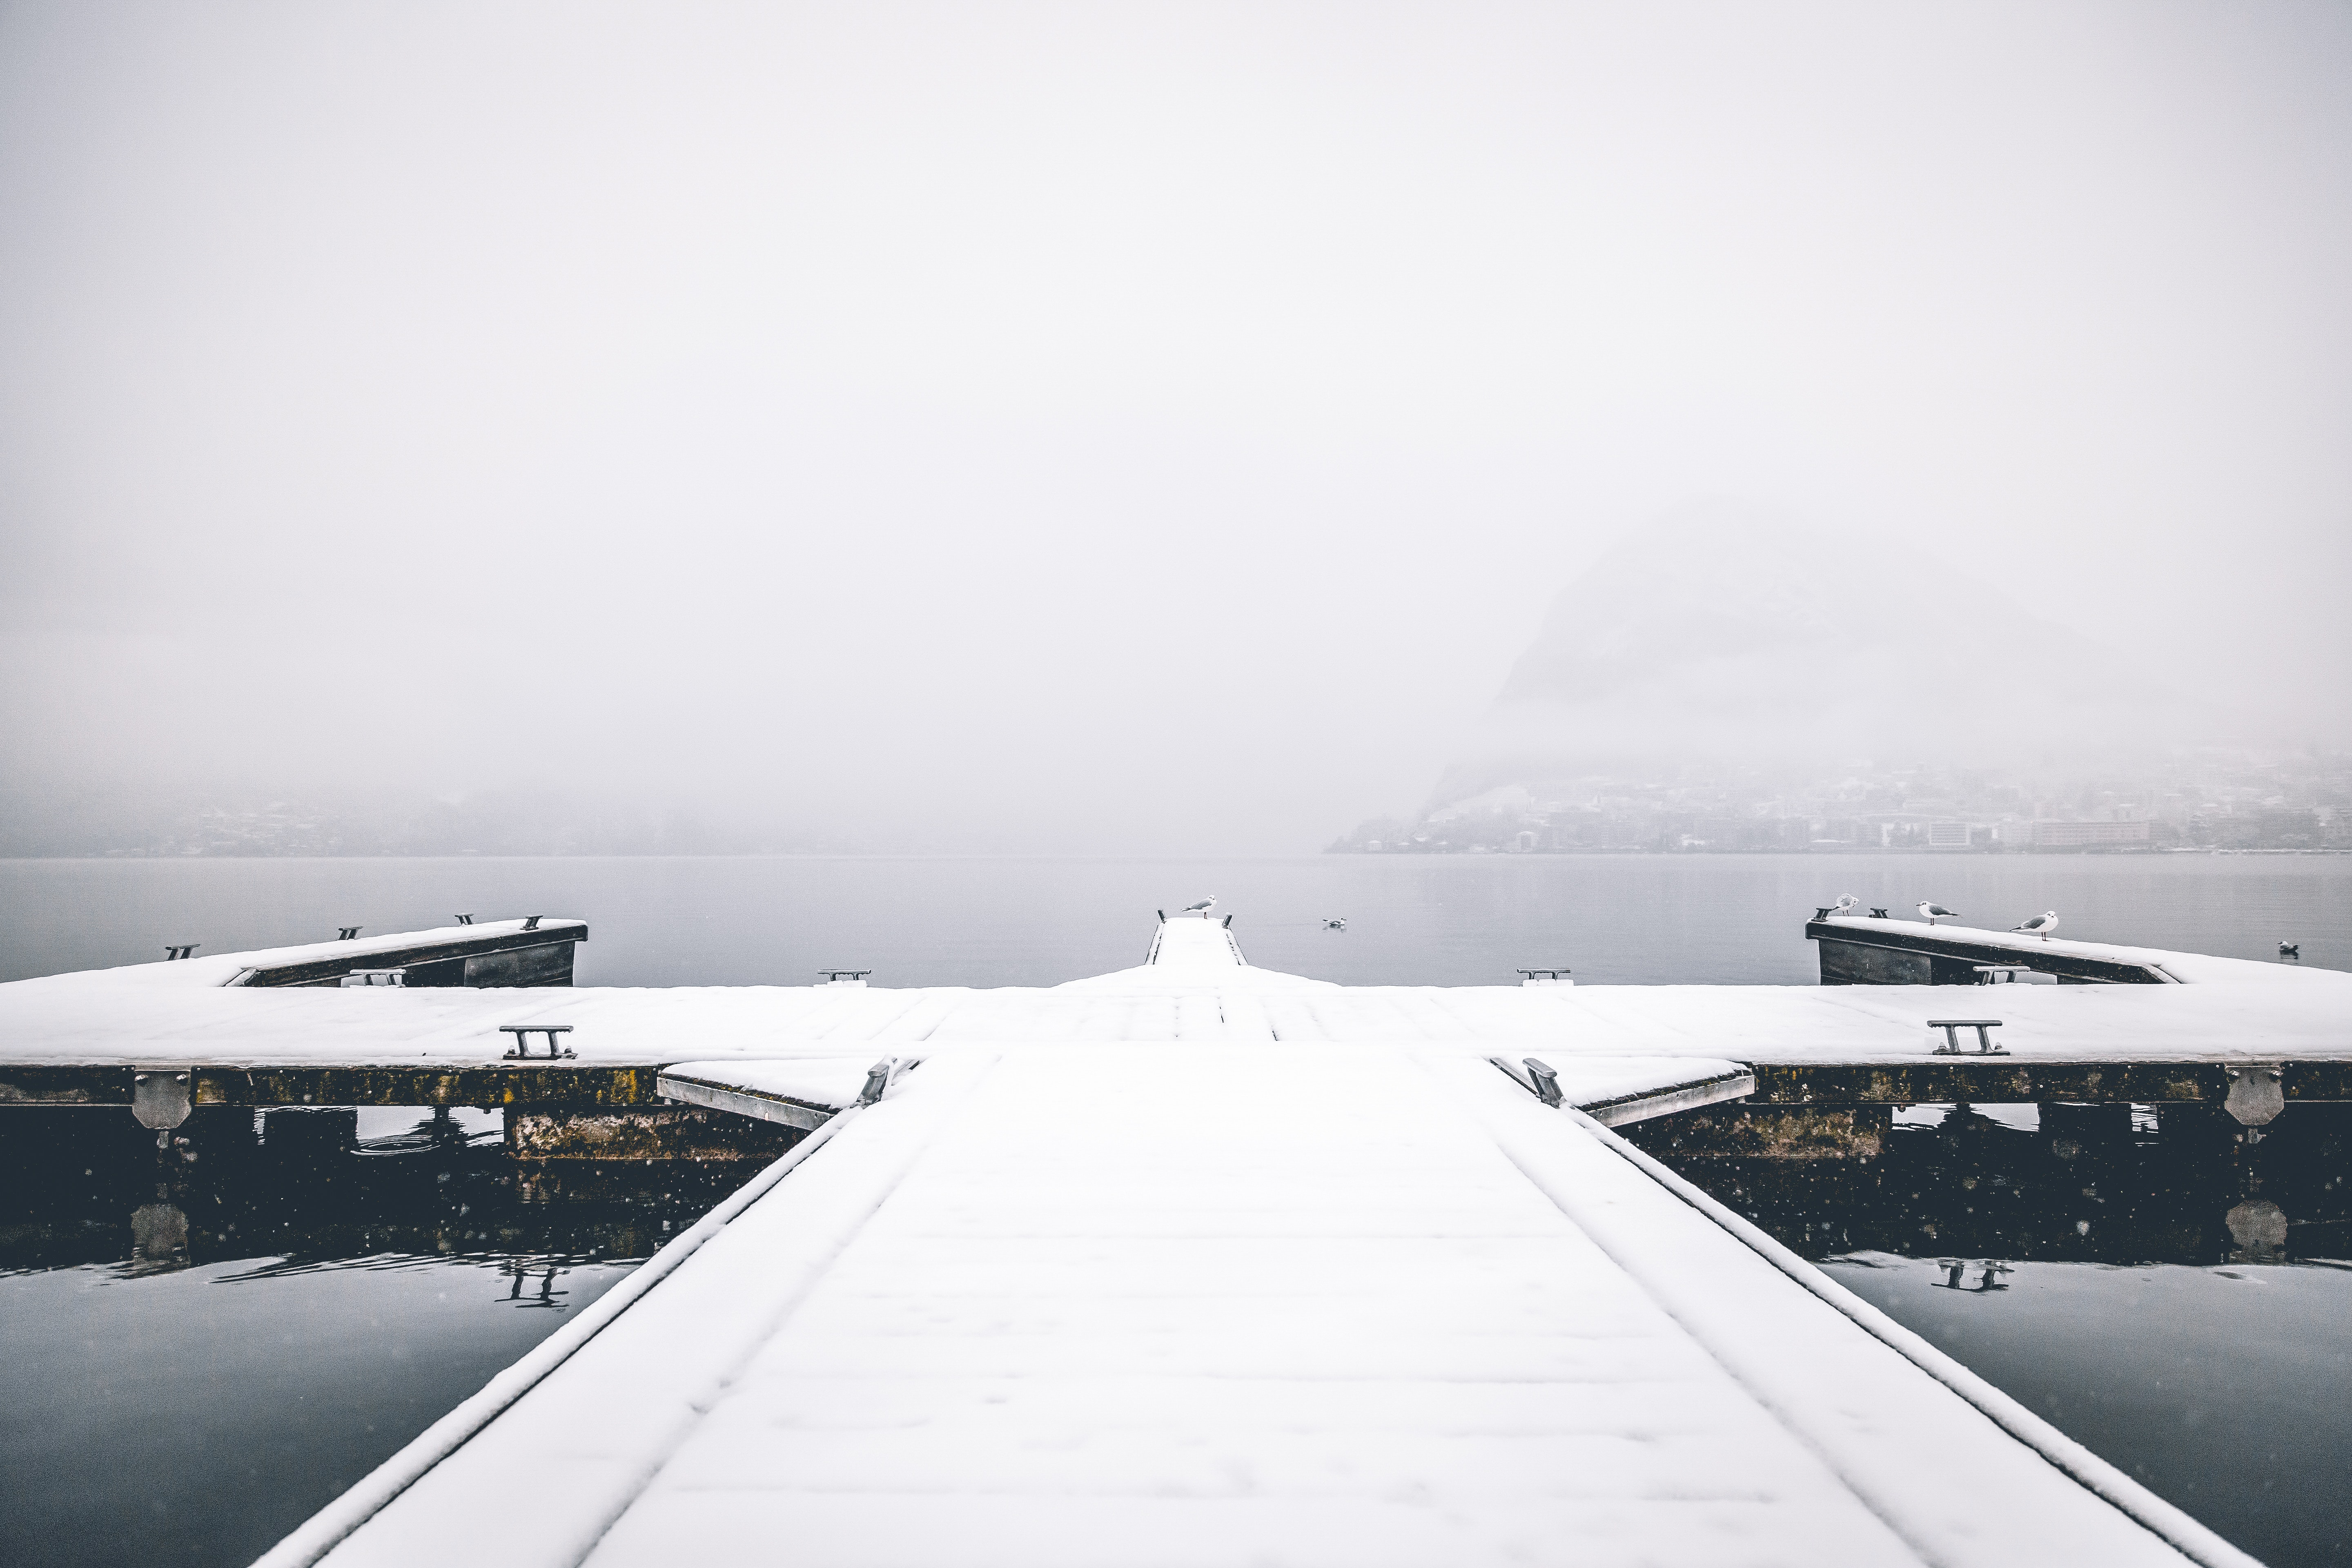 Snow Dock Port Photography, Airport, Daytime, Landscape, Outdoors, HQ Photo